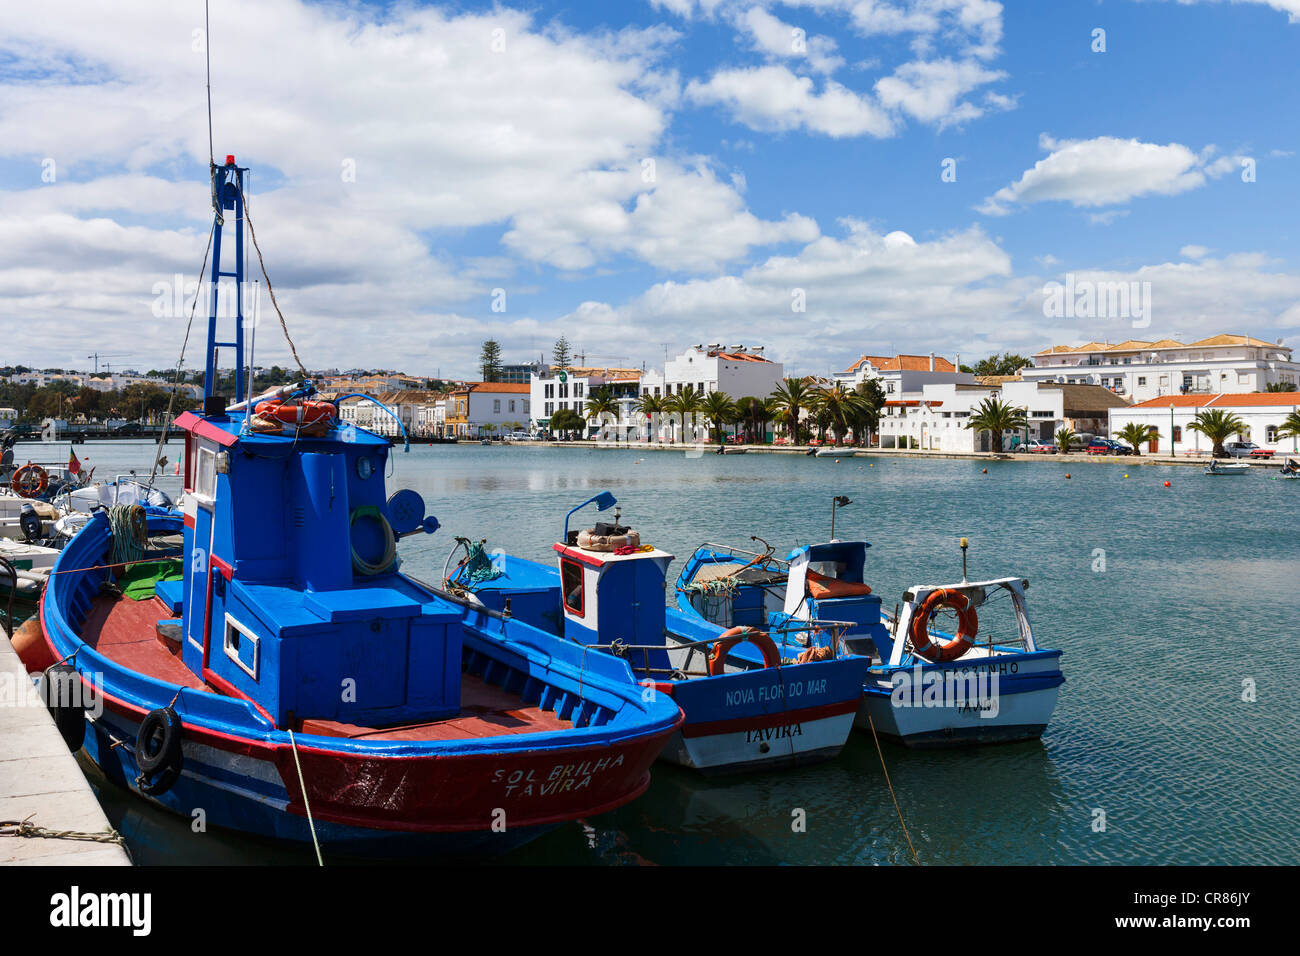 Fishing boats moored on the River Gilao in the Old Town, Tavira, Algarve, Portugal - Stock Image